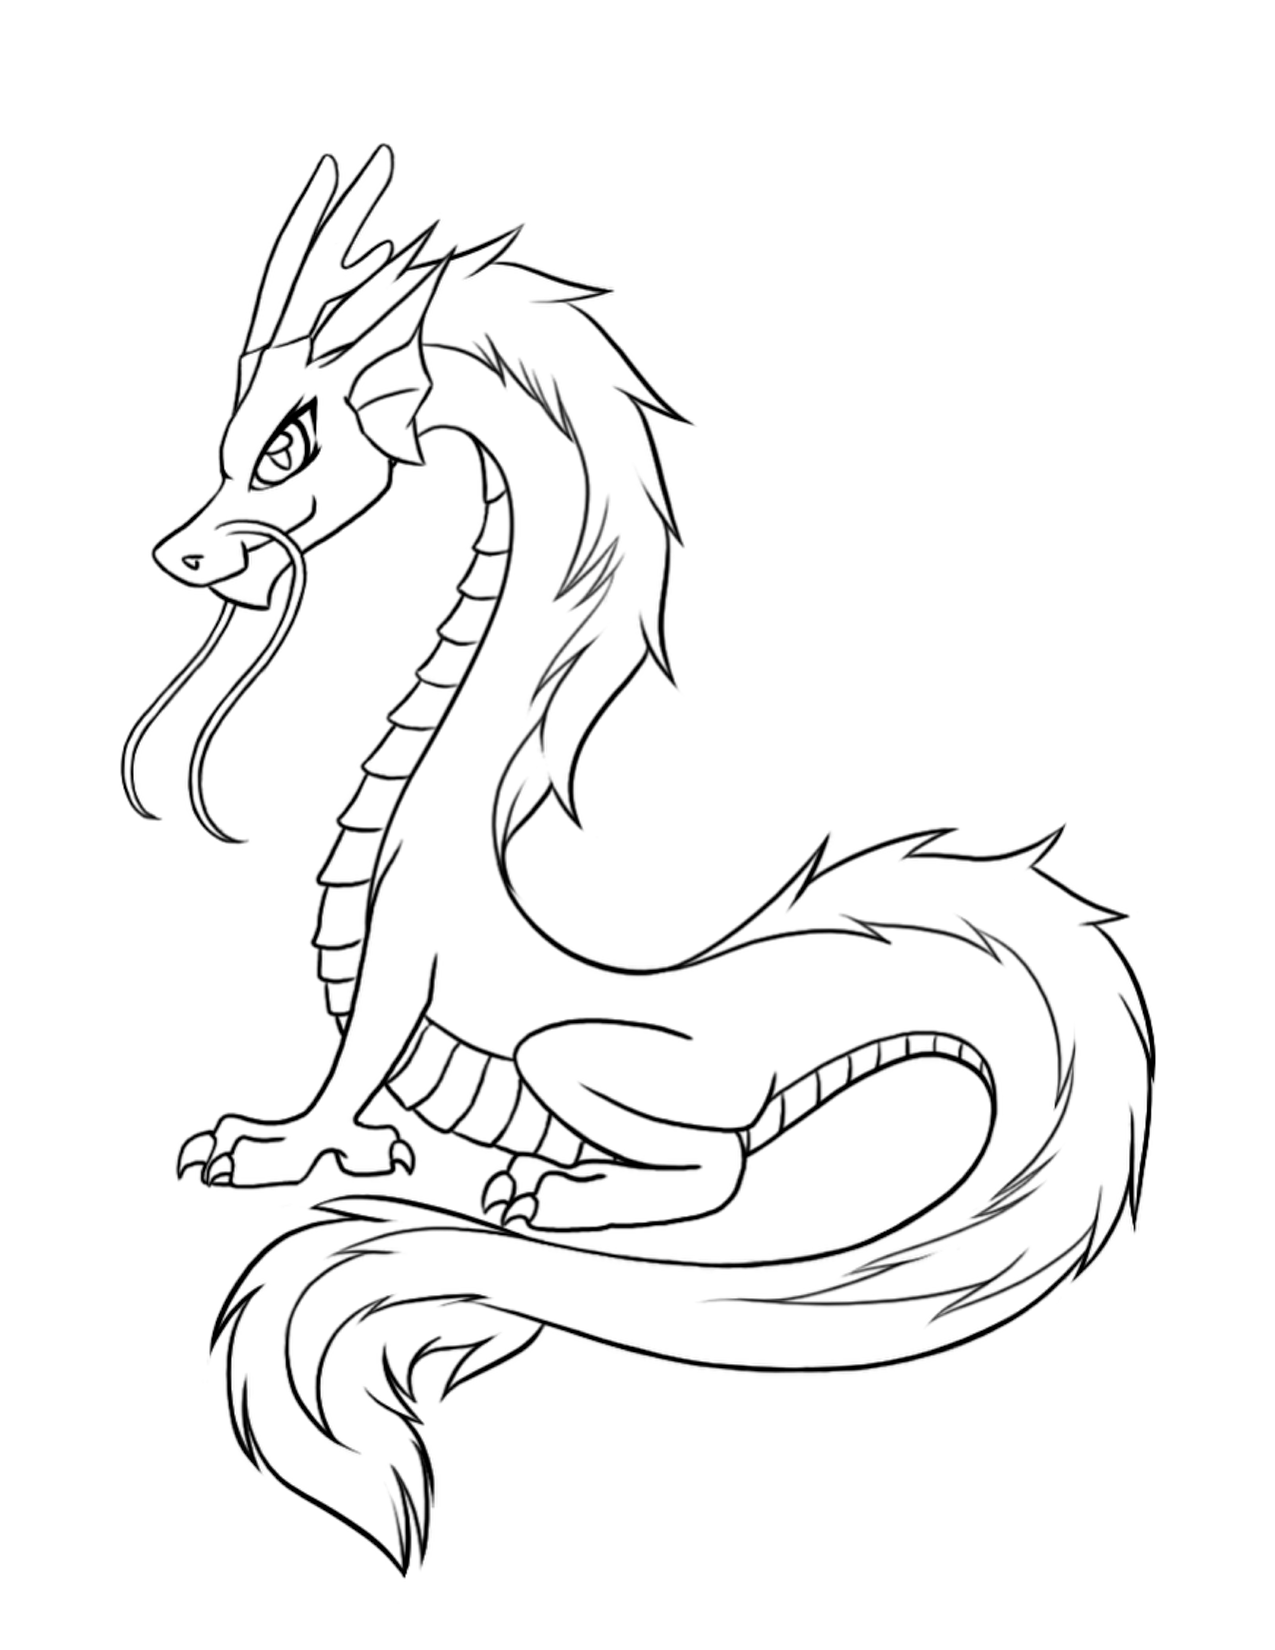 Dragon Drawing Books At Getdrawings Com Free For Personal Use